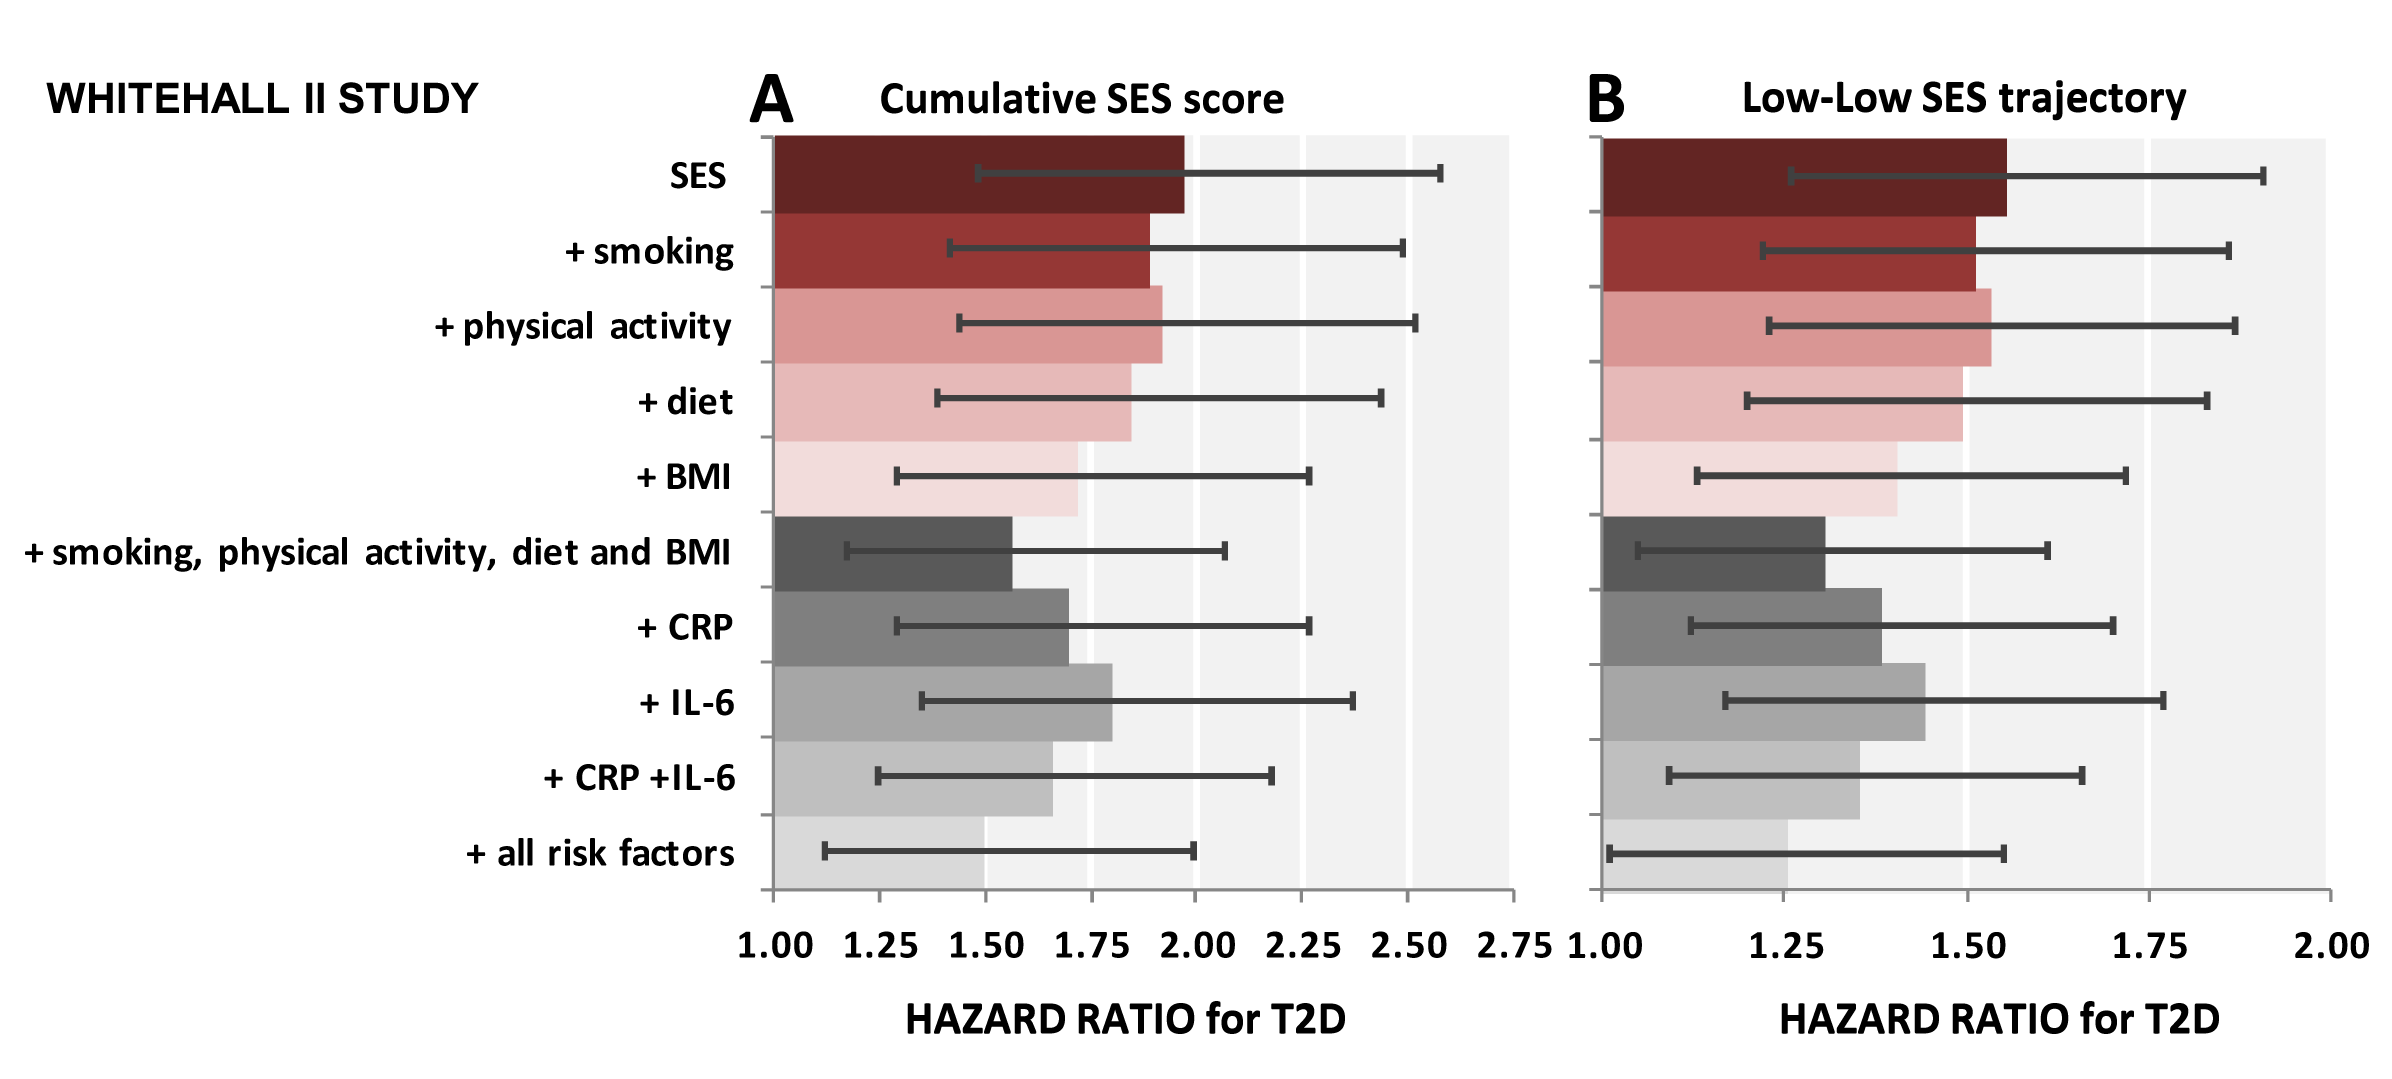 Contribution of smoking, physical activity, diet, BMI, CRP, and IL-6 to the association between lifecourse socioeconomic status and type 2 diabetes incidence.